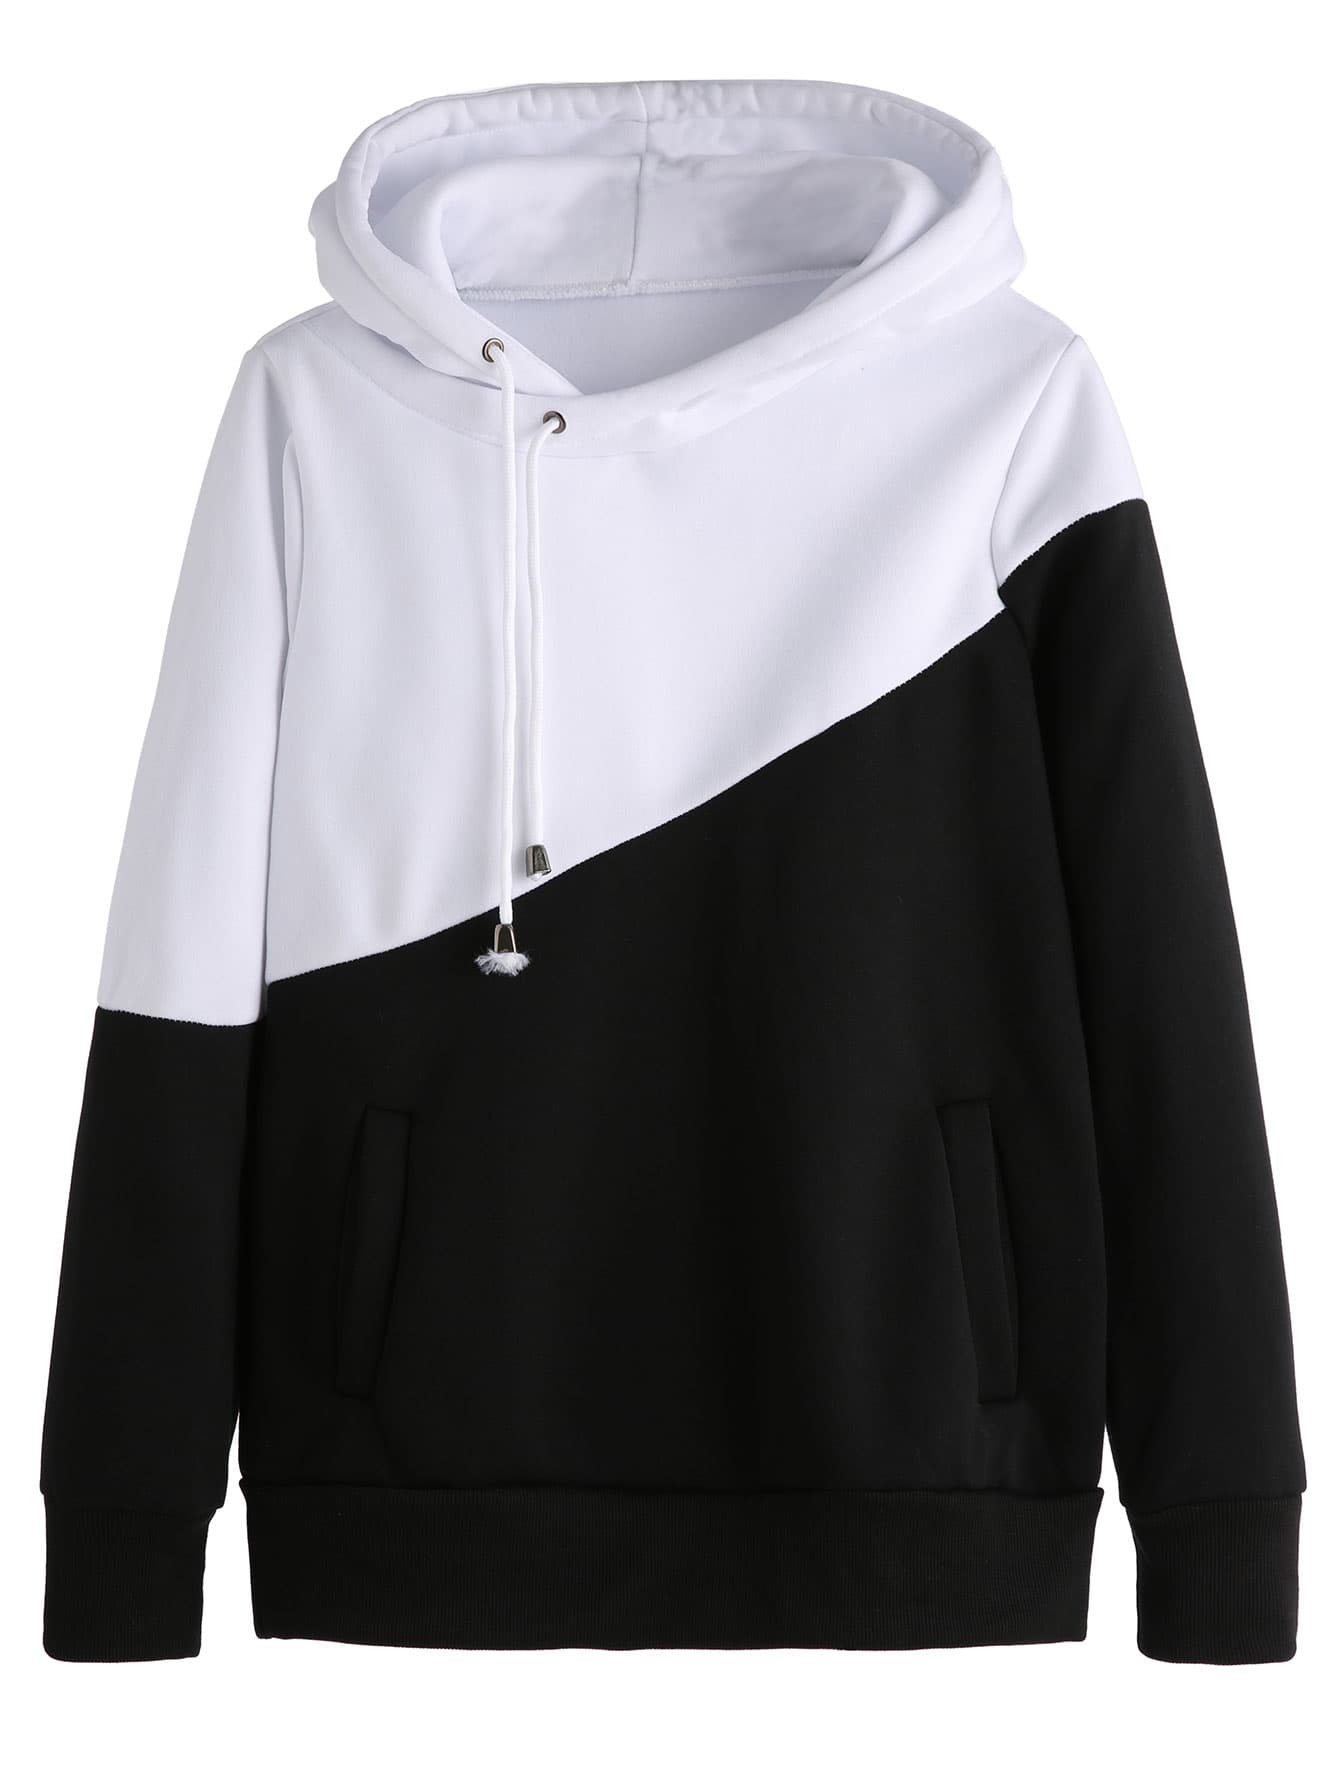 Best Seller in Sweatshirts at SheIn.com